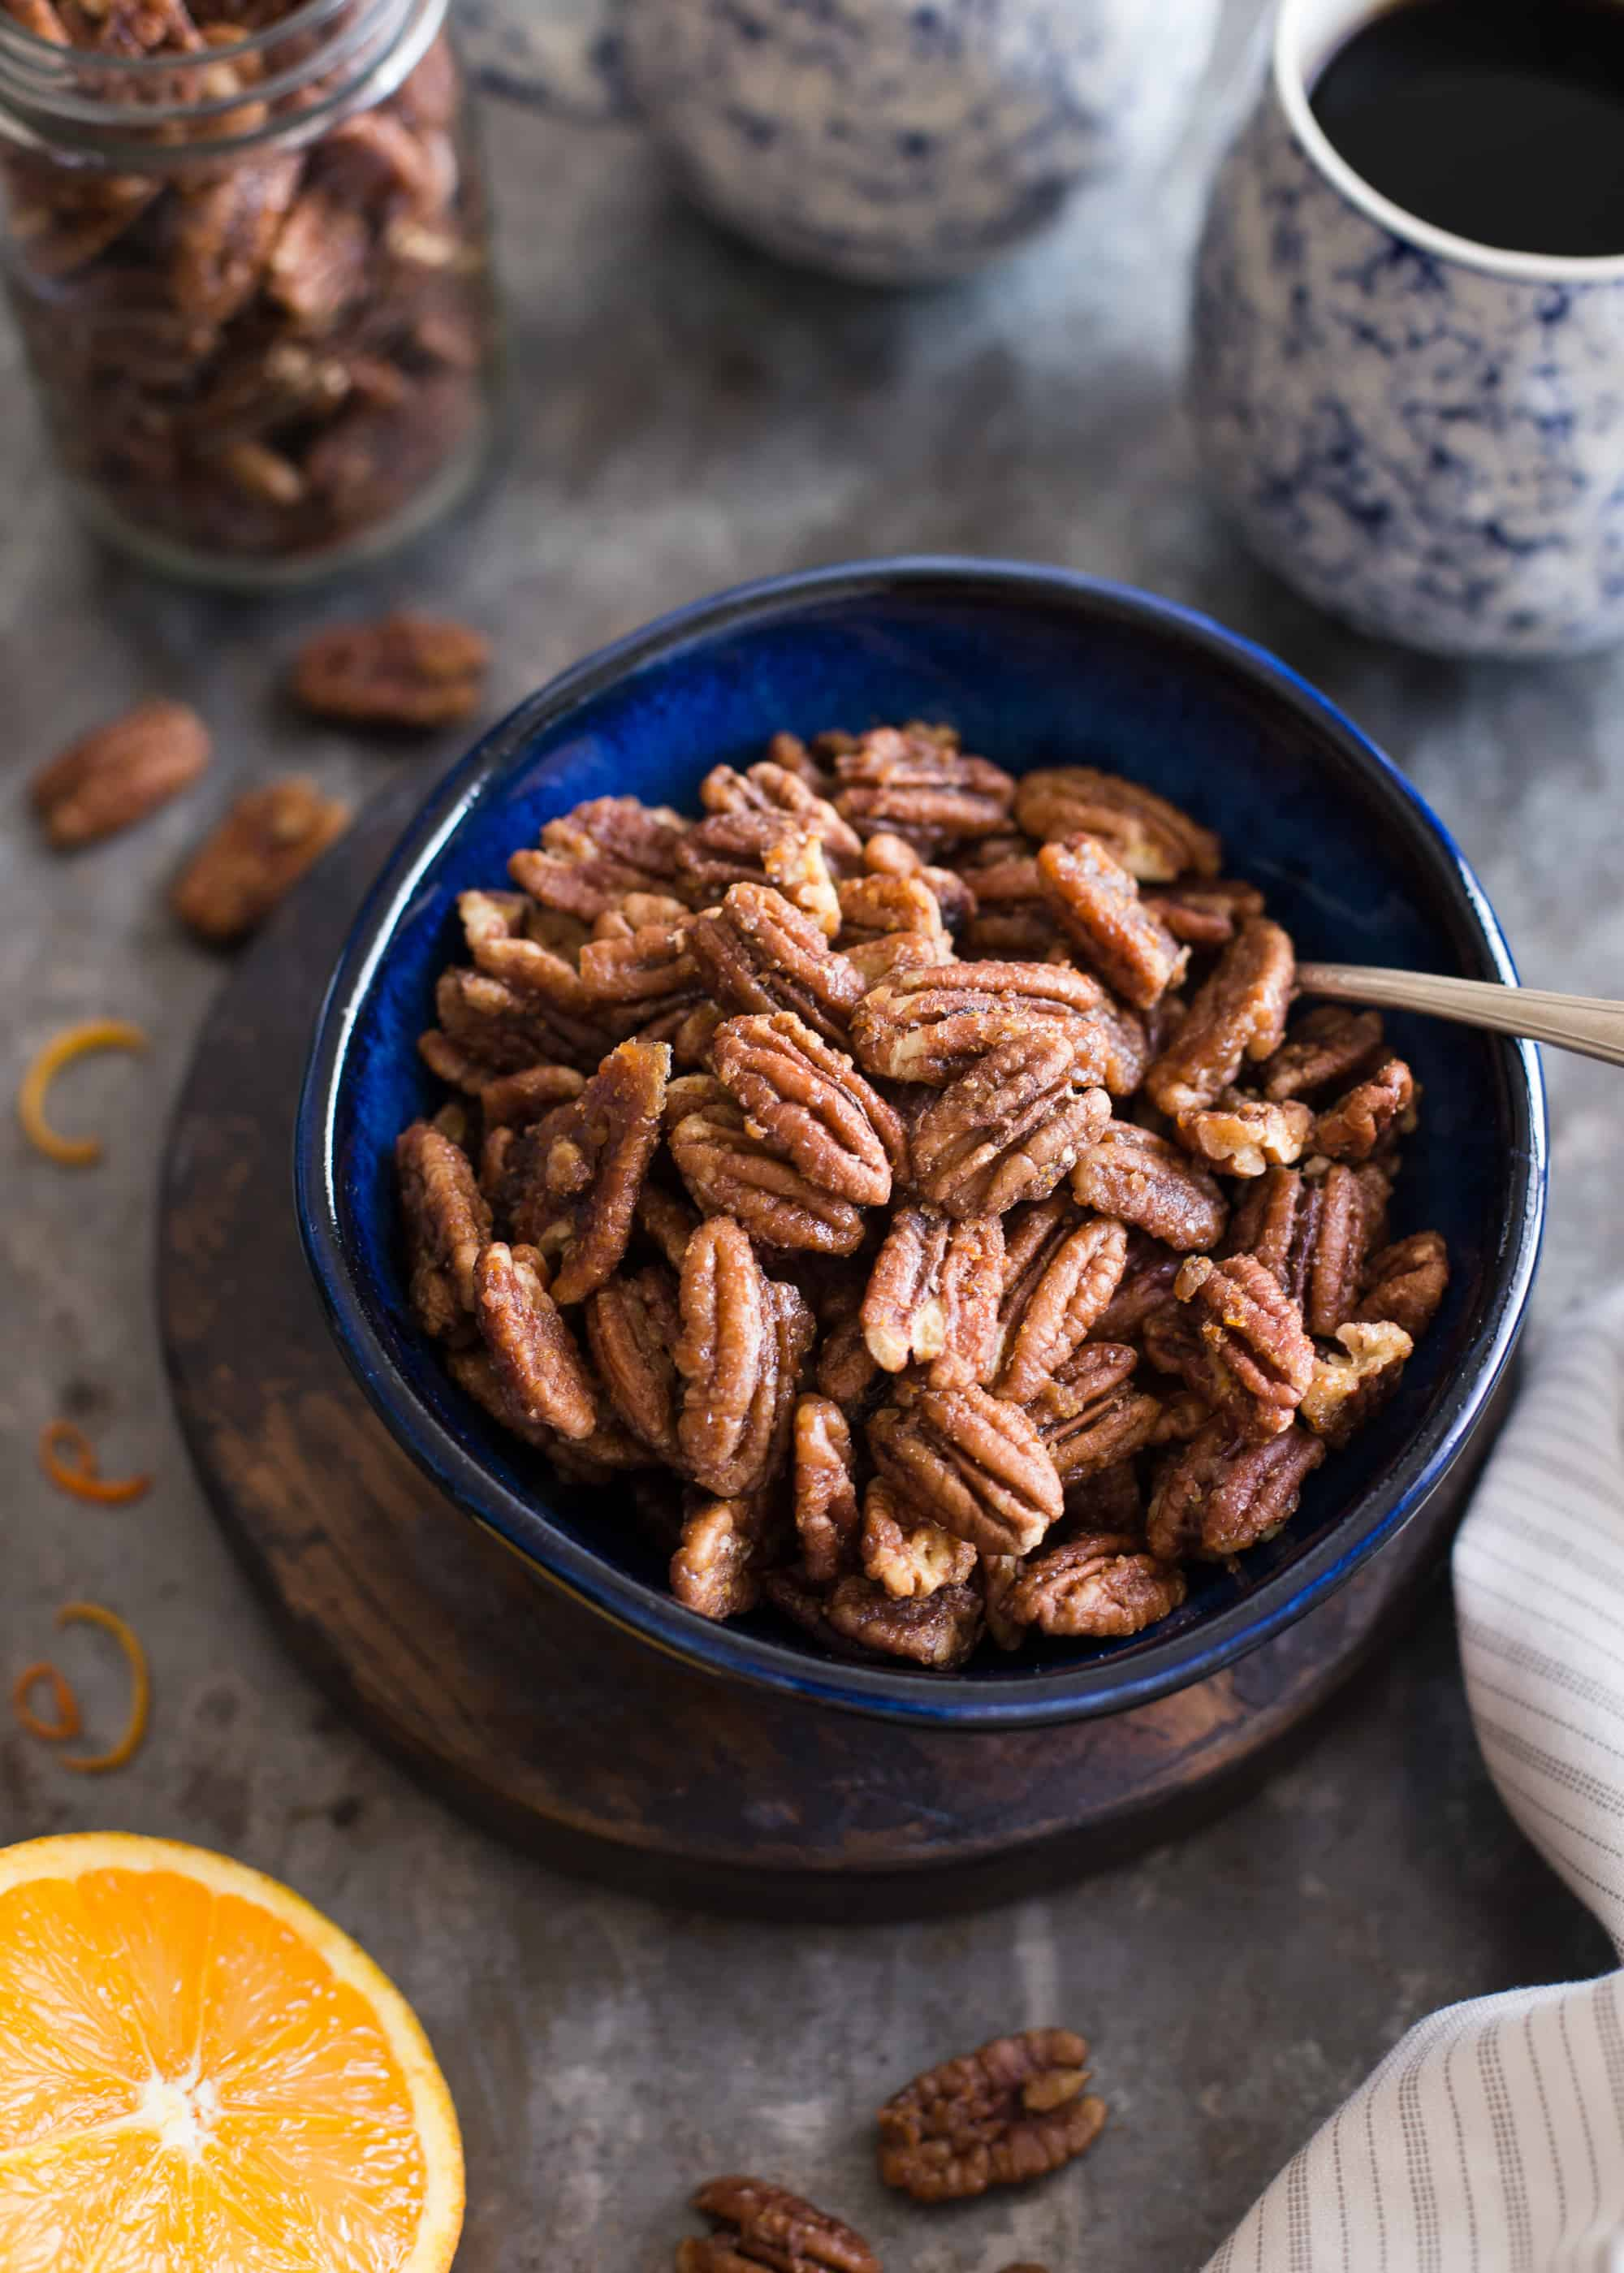 Maple-Orange Roasted Pecans | This naturally sweetened, gluten-free snack is bursting with the flavors of maple and orange.